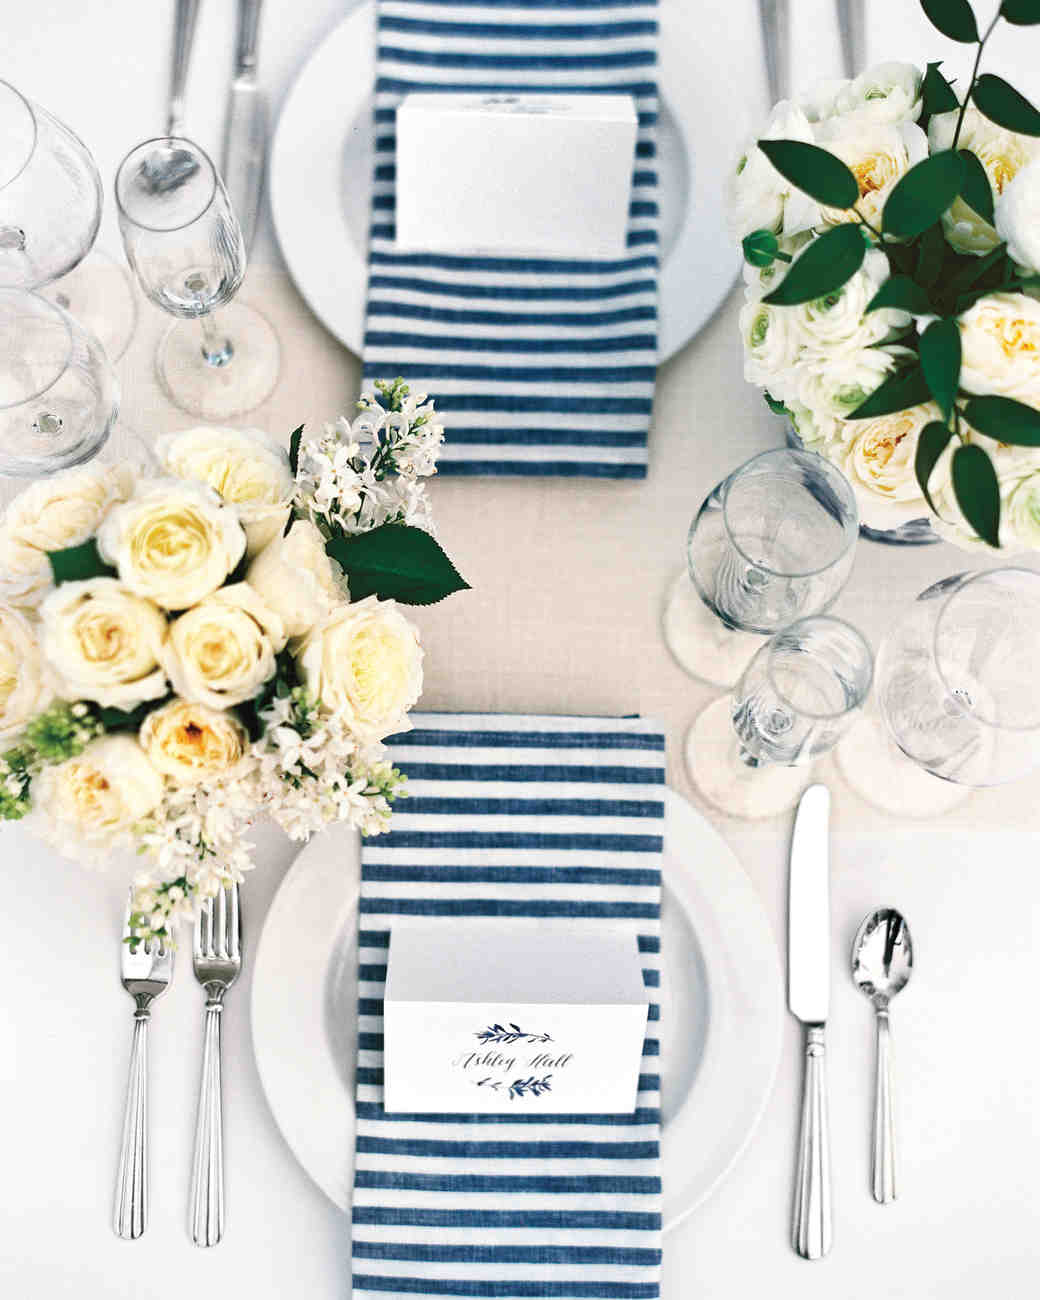 sc 1 st  Martha Stewart Weddings & 18 Creative Ways to Set Your Reception Tables | Martha Stewart Weddings